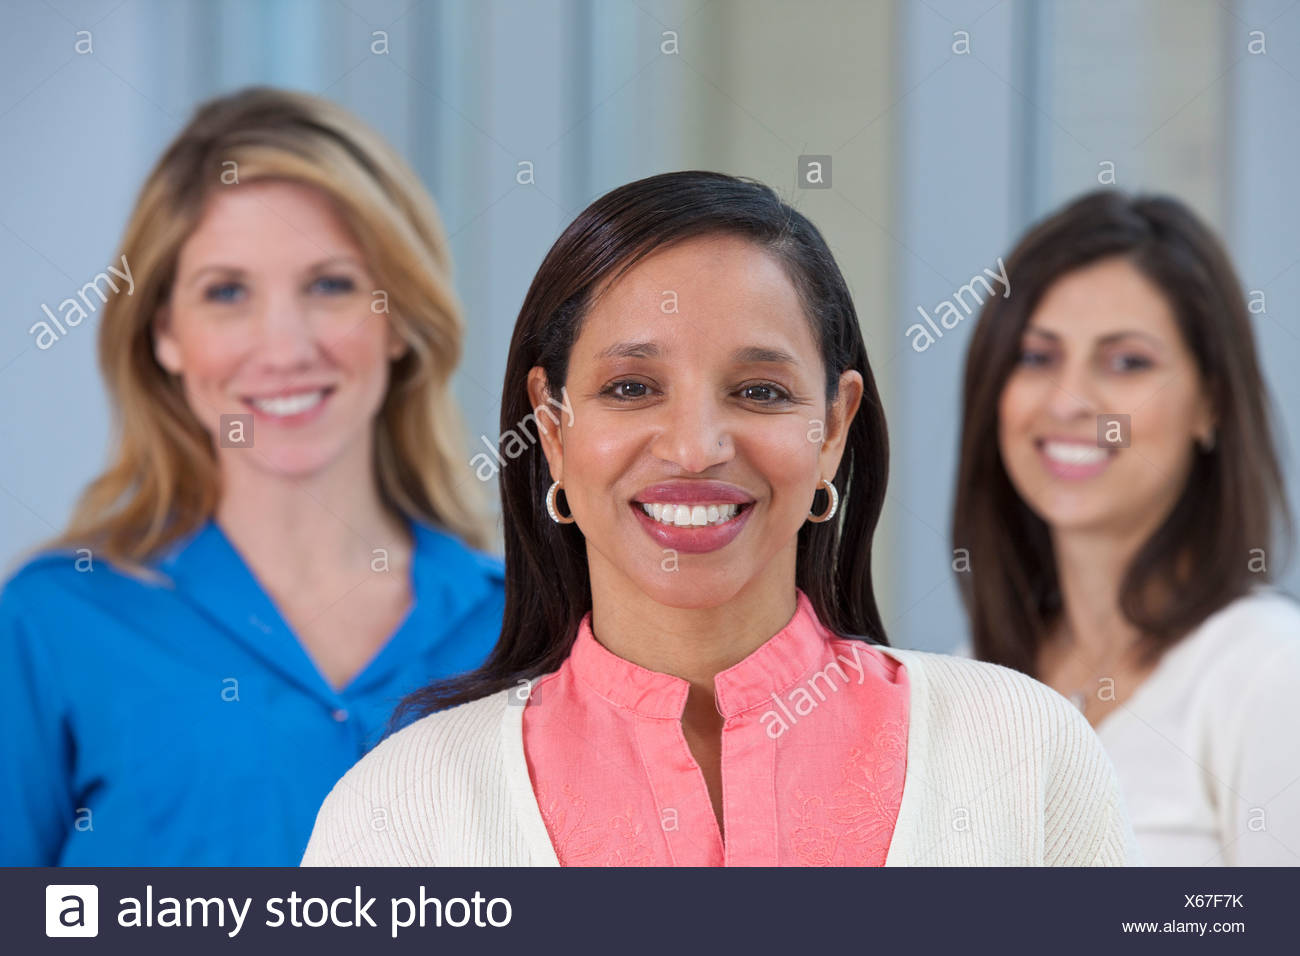 Portrait of a Hispanic woman smiling with her friends in the background Stock Photo